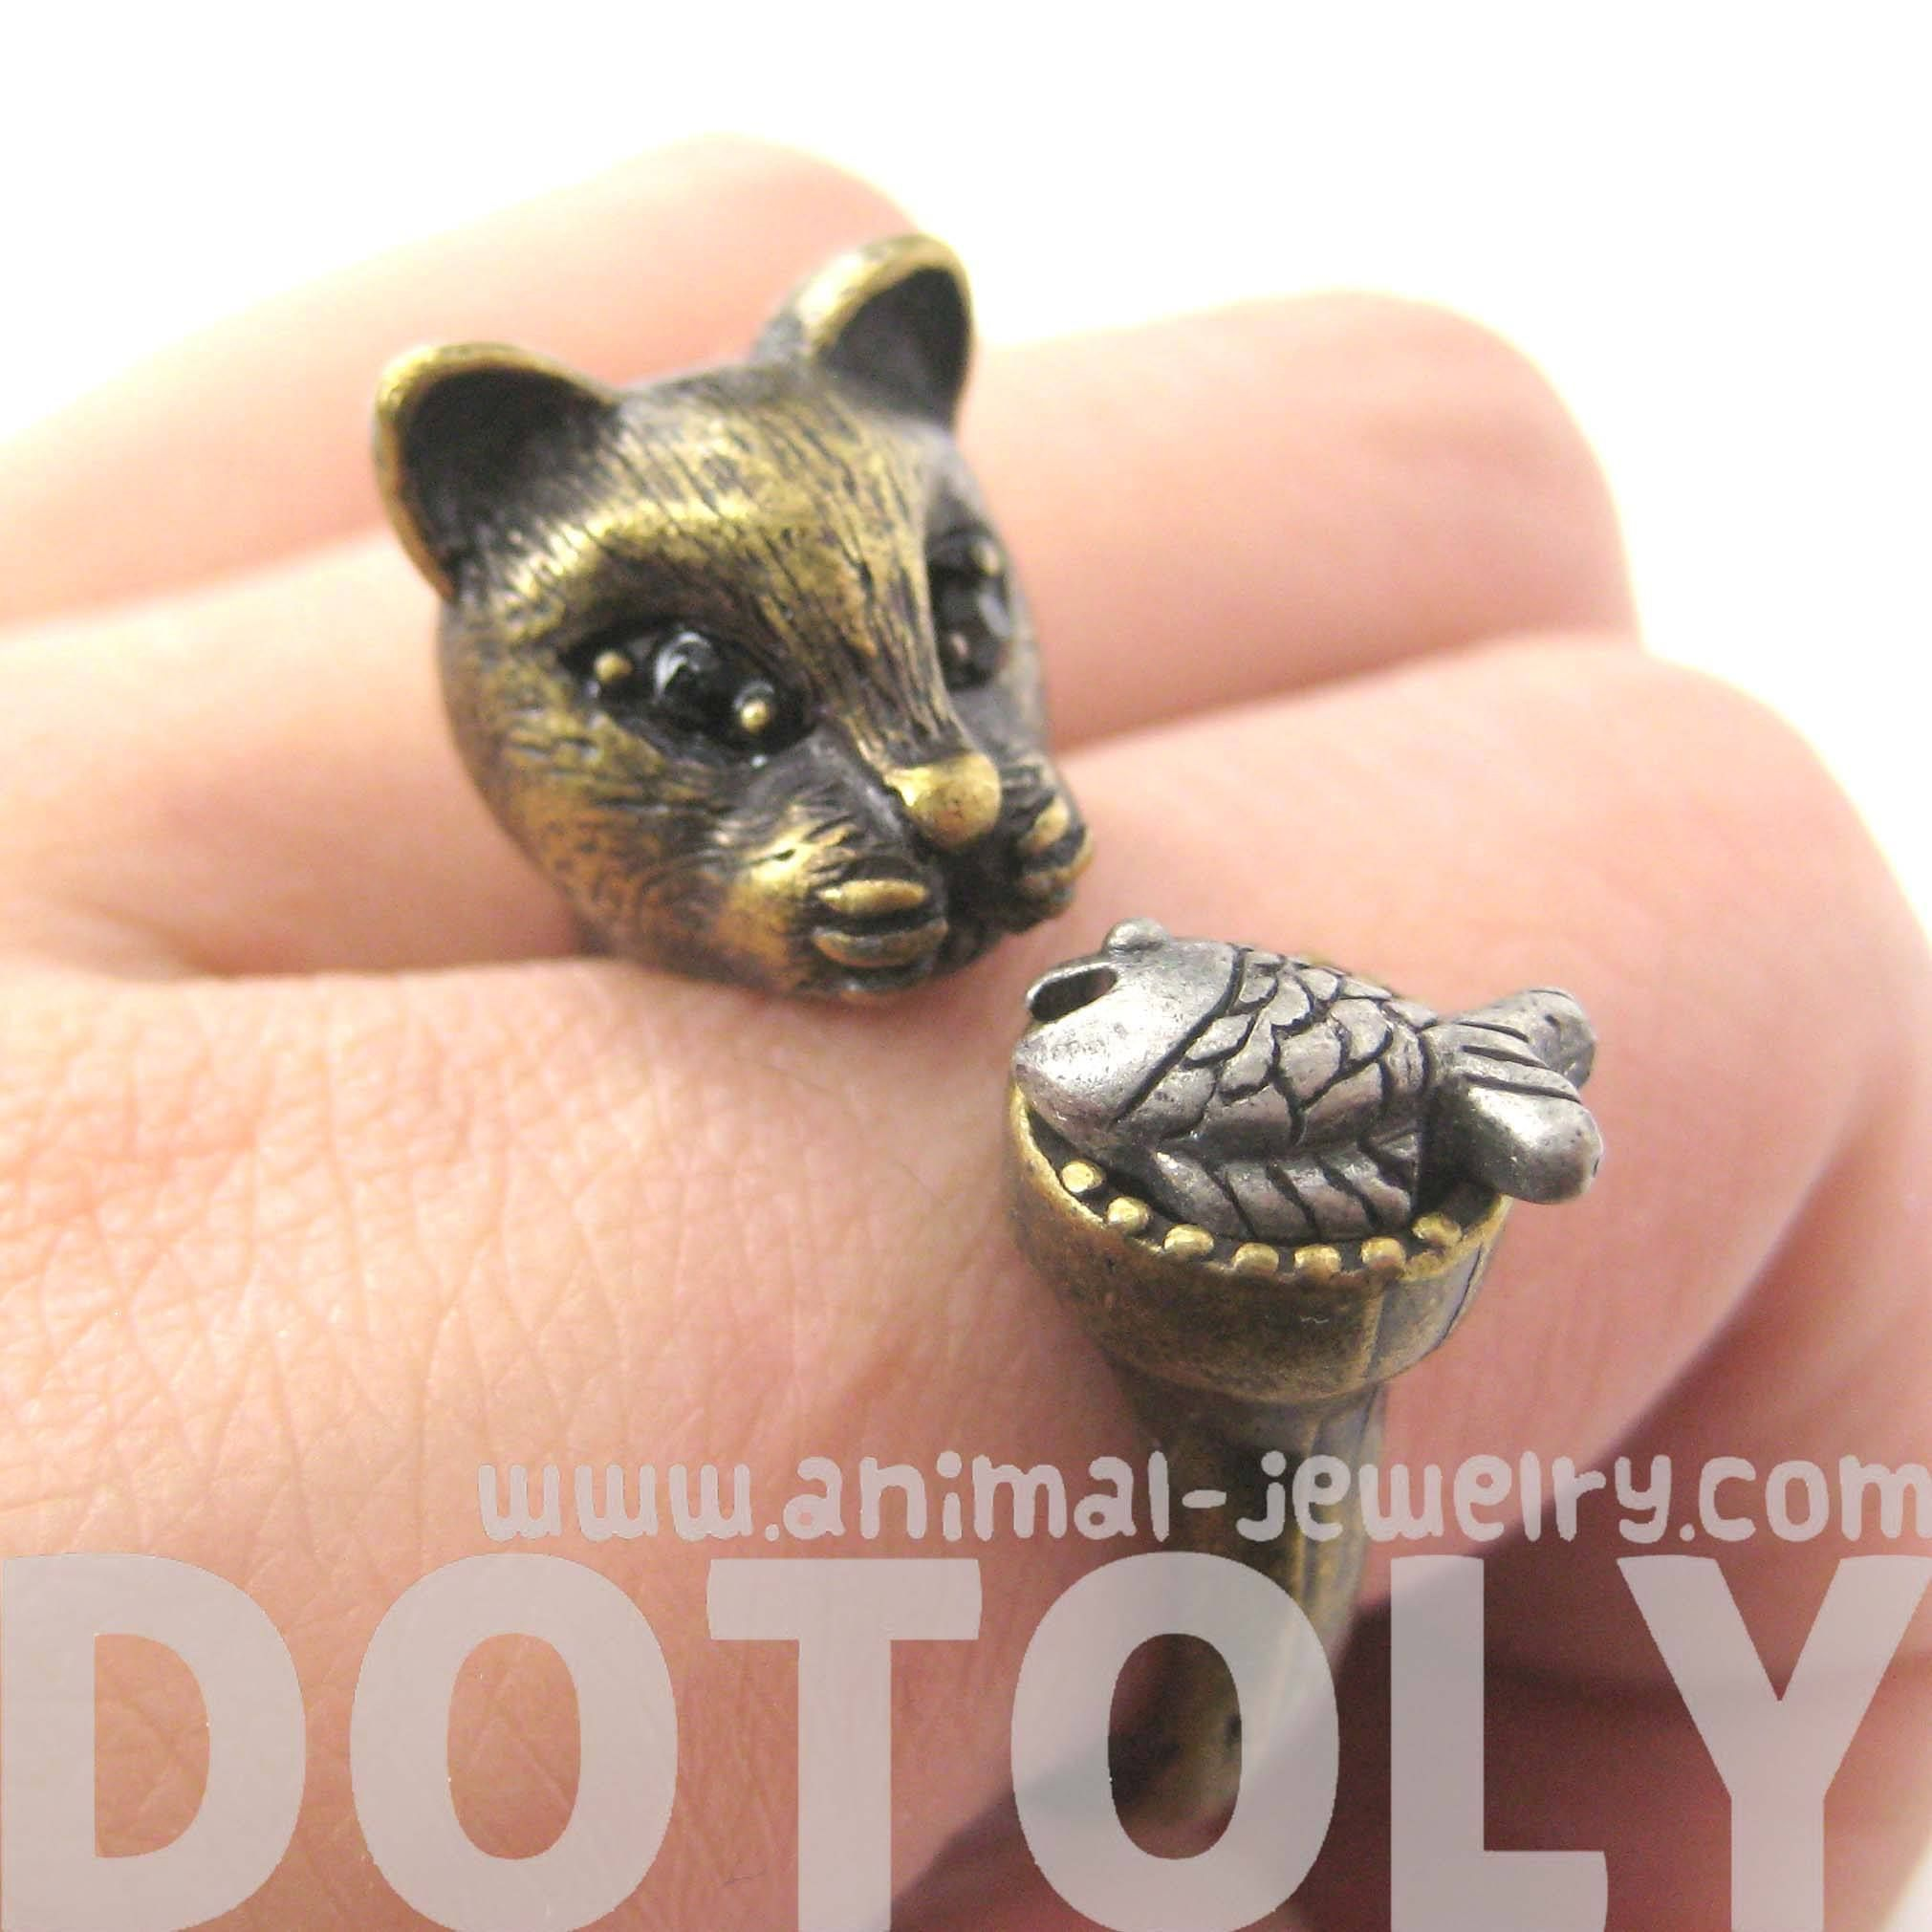 Details Sizing A detailed kitty cat animal ring made